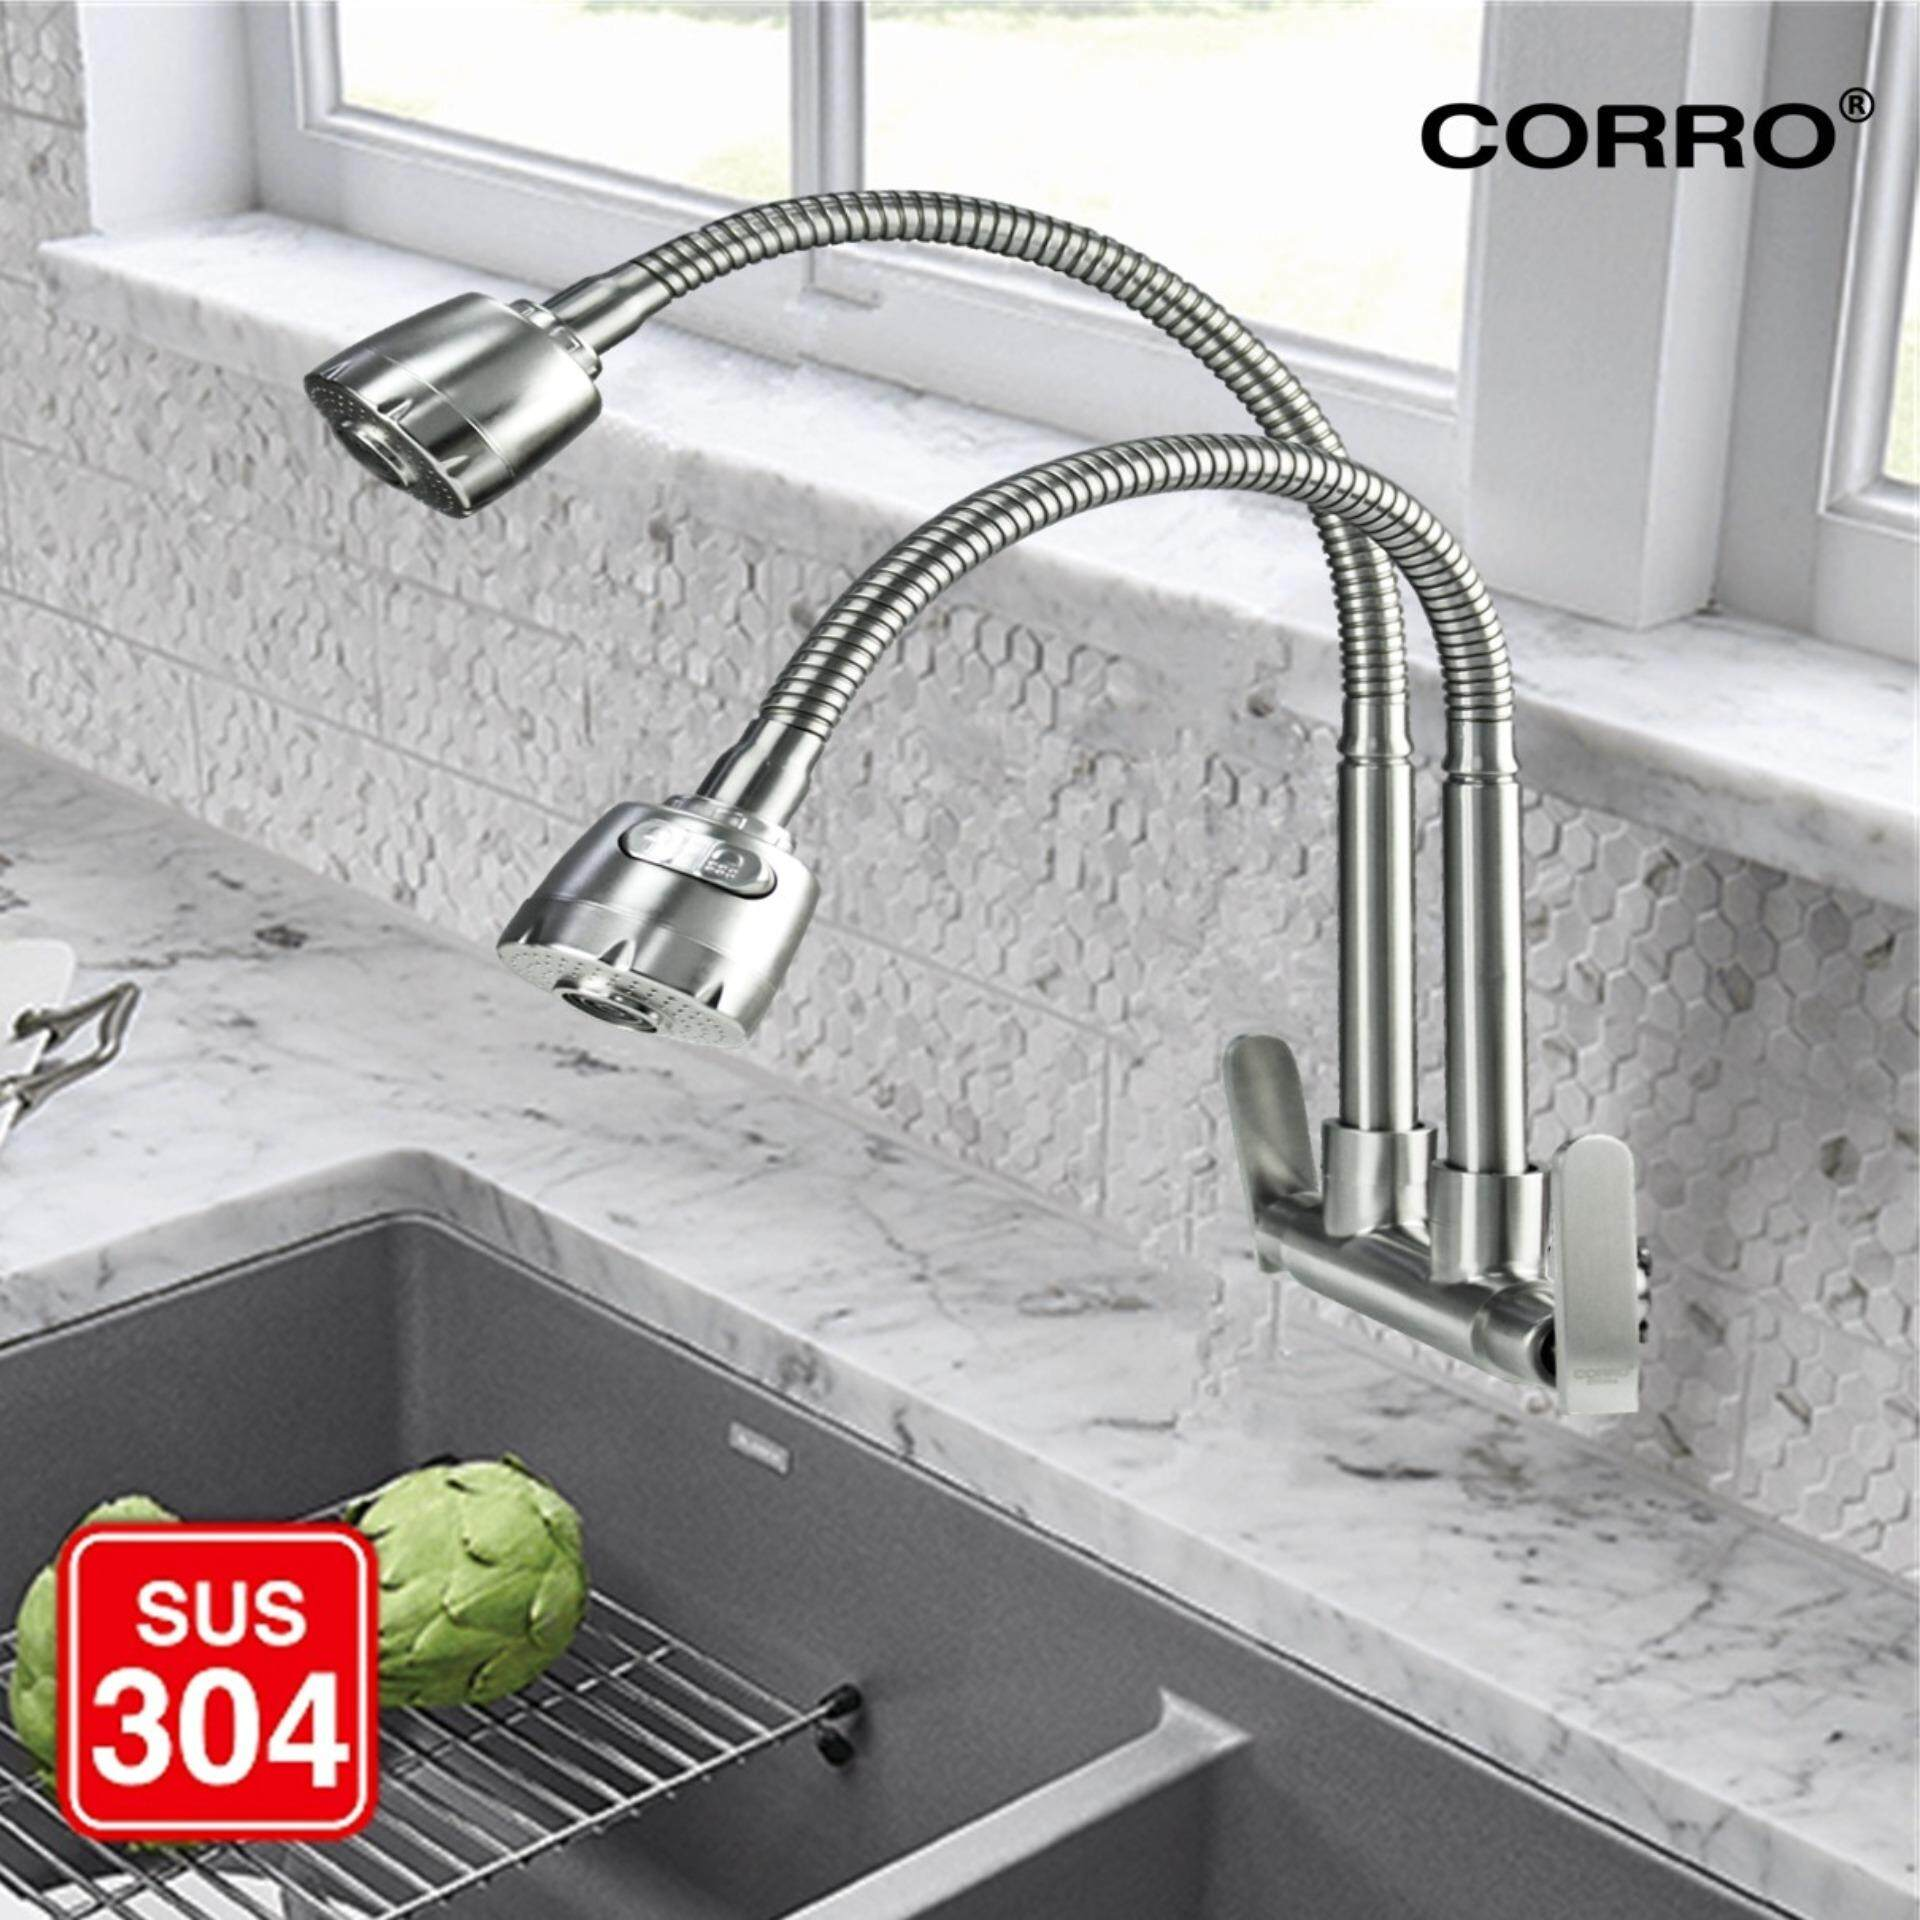 CORRO SUS304 Stainless Steel Twin Hose Flexible Swivel Kitchen Sink Wall Tap